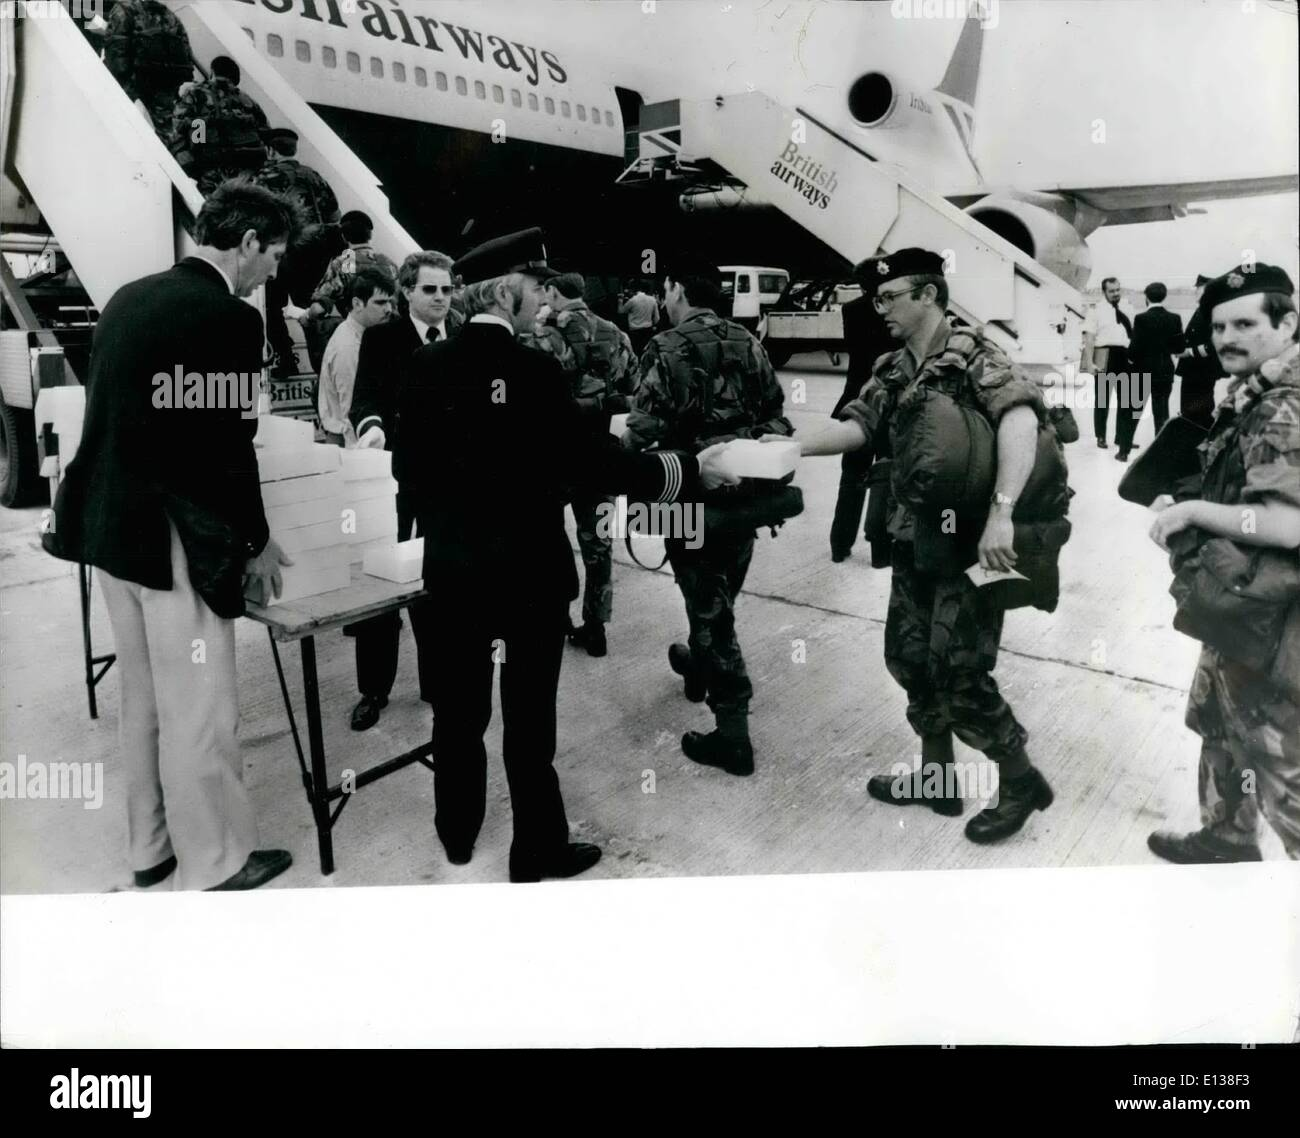 Feb. 29, 2012 - 15th September 1980 Territorials Join Exercise Crusader. 800 Naval Reserve and Army Territorials left London Airport (Heathrow) at the weekend on a VC10 and two Tristars bound for Dusseldorf and Guttersloh to take part in Exercise Crusader. They were part of over 20,000 soldiers of the Territorial Army who left Britain this weekend by sea and air to join more than 10,000 Regulars who started moving to Germany two weeks ago. In a short time the Territorials had left their civilian jobs and were transported to action Stations on the Continent - Stock Image